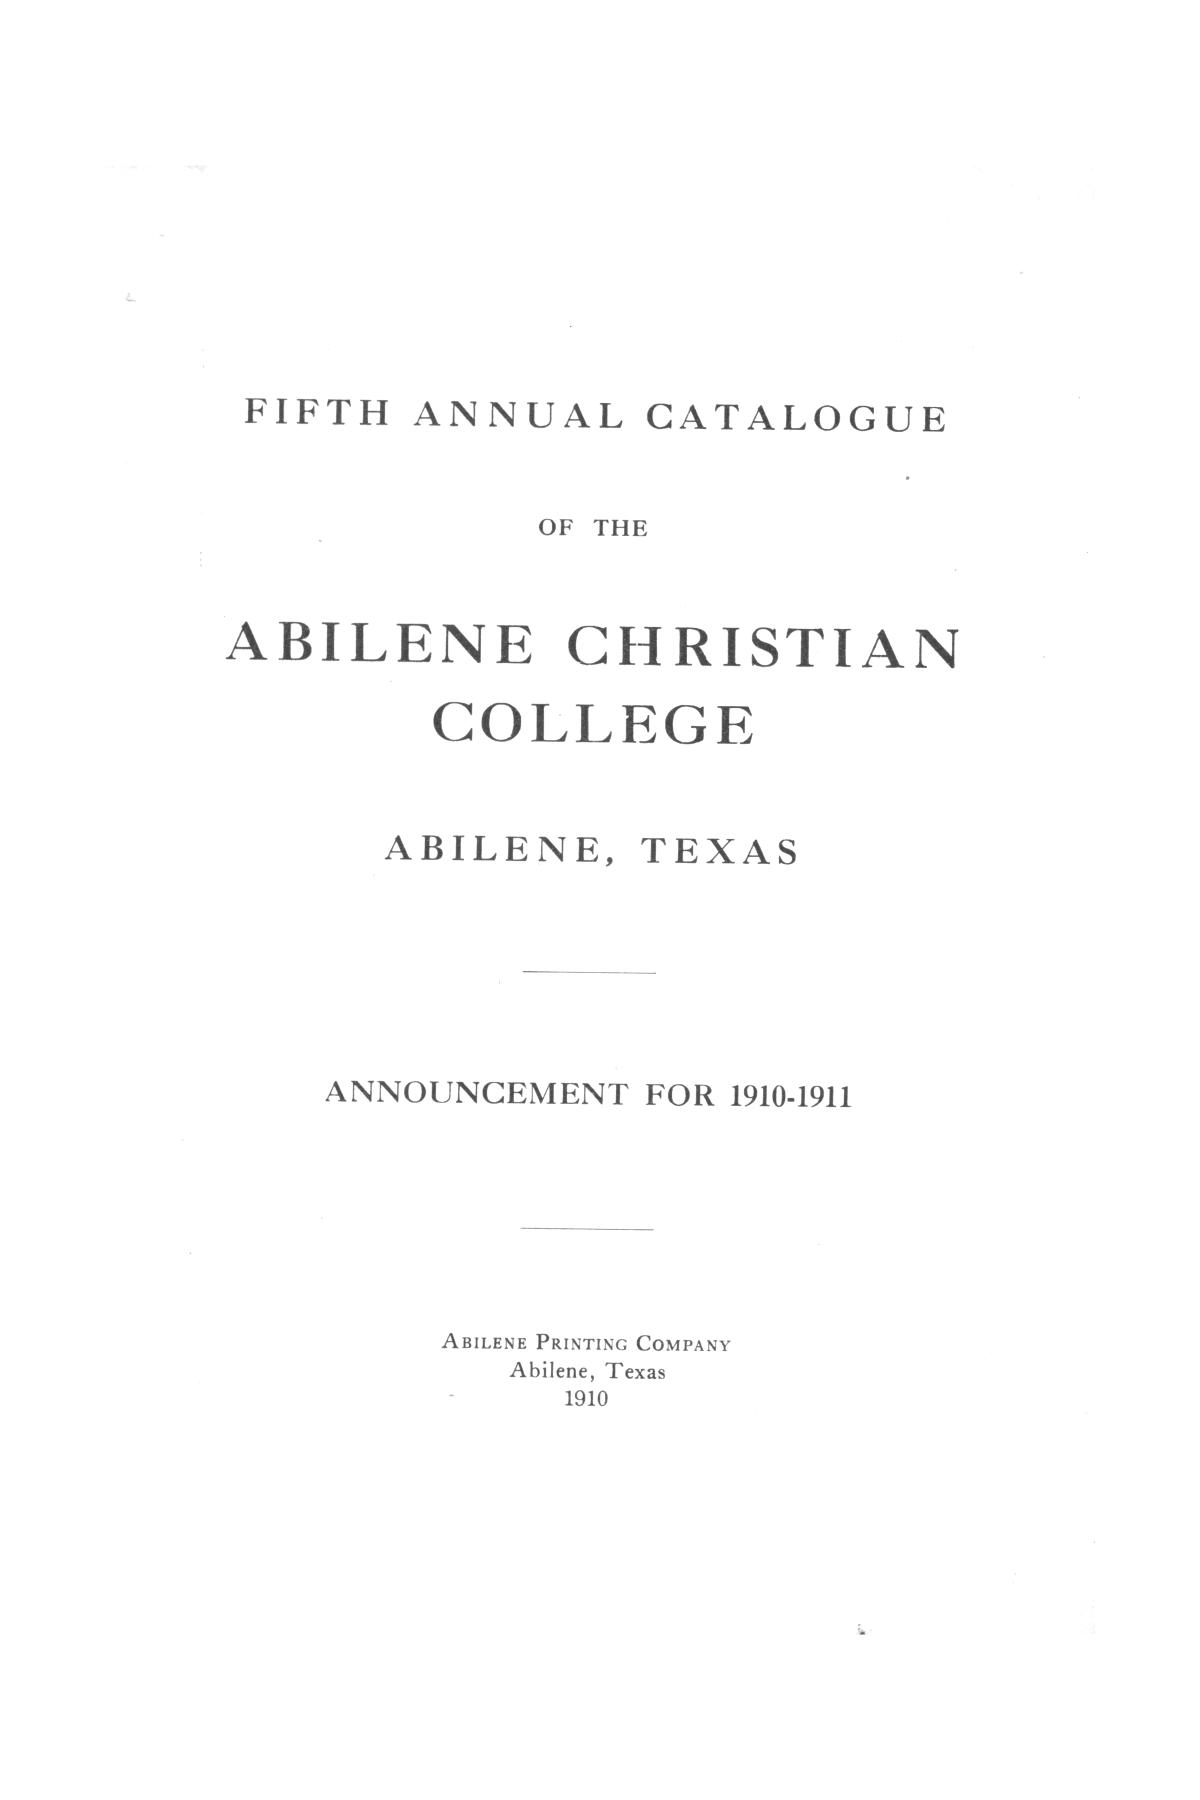 Catalog of Abilene Christian College, 1910-1911                                                                                                      [Sequence #]: 3 of 25